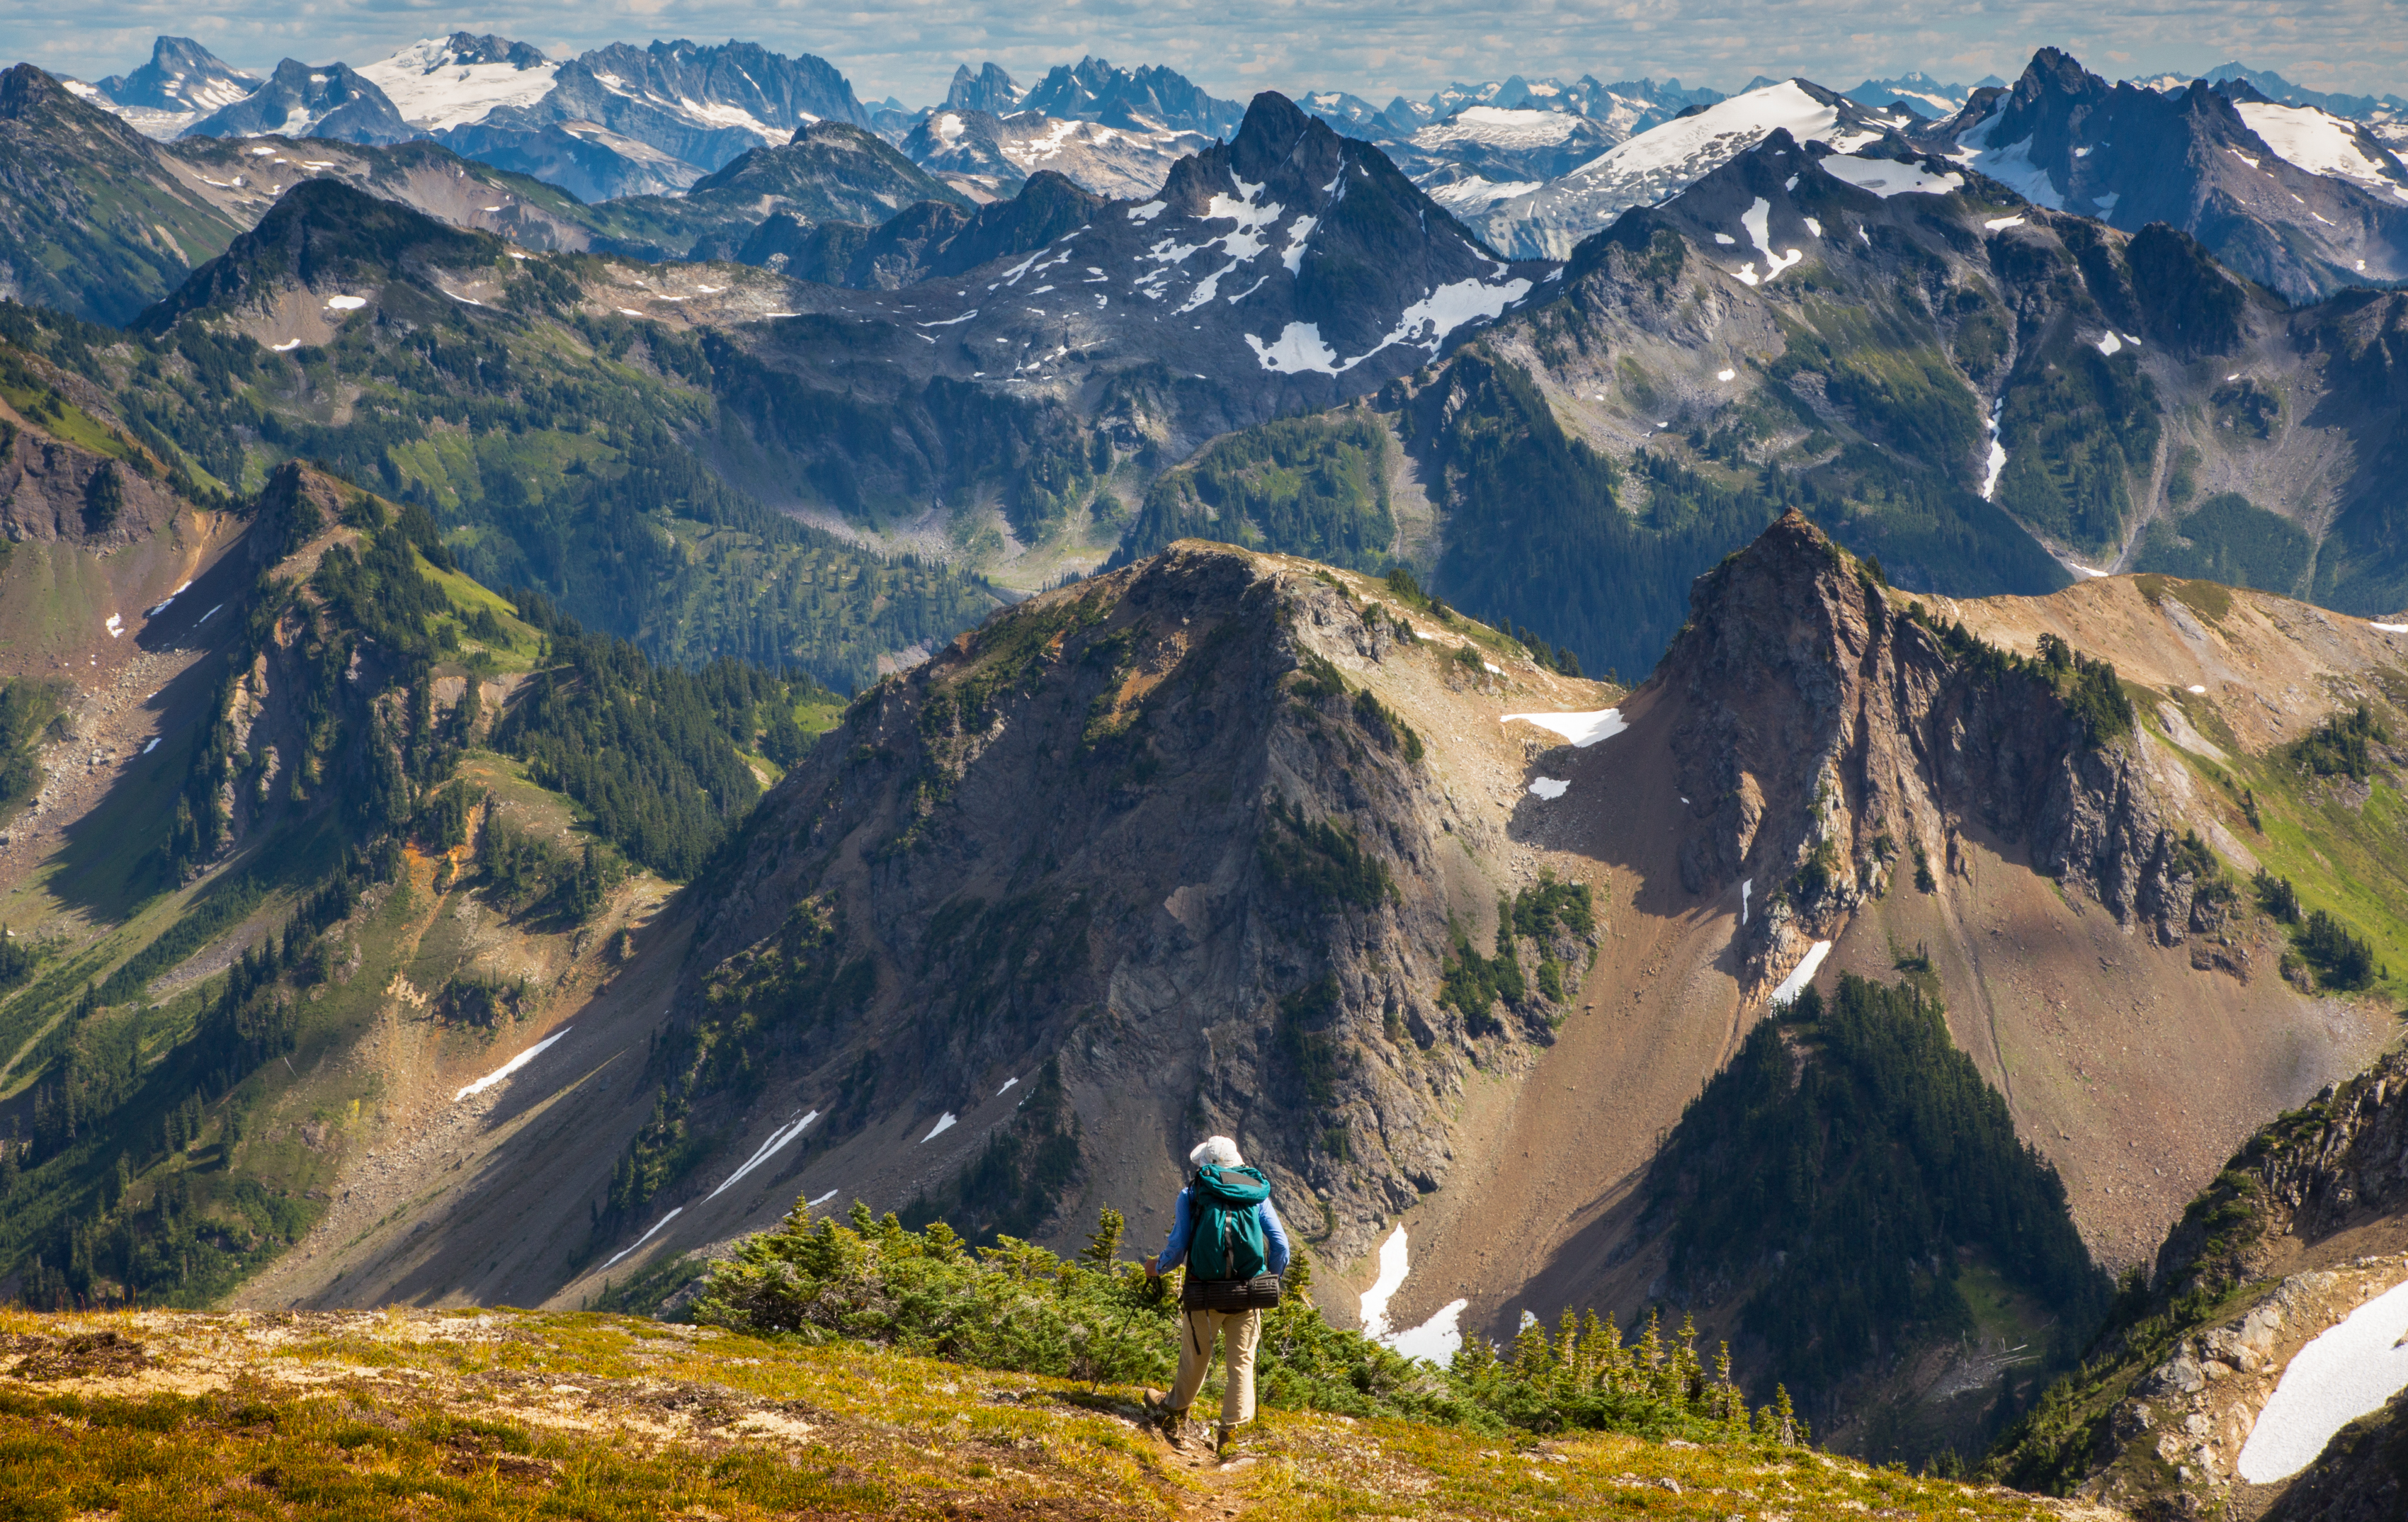 Image displays a hiker looking off at the mountain line, where there are layers of mountain peaks in front of him.